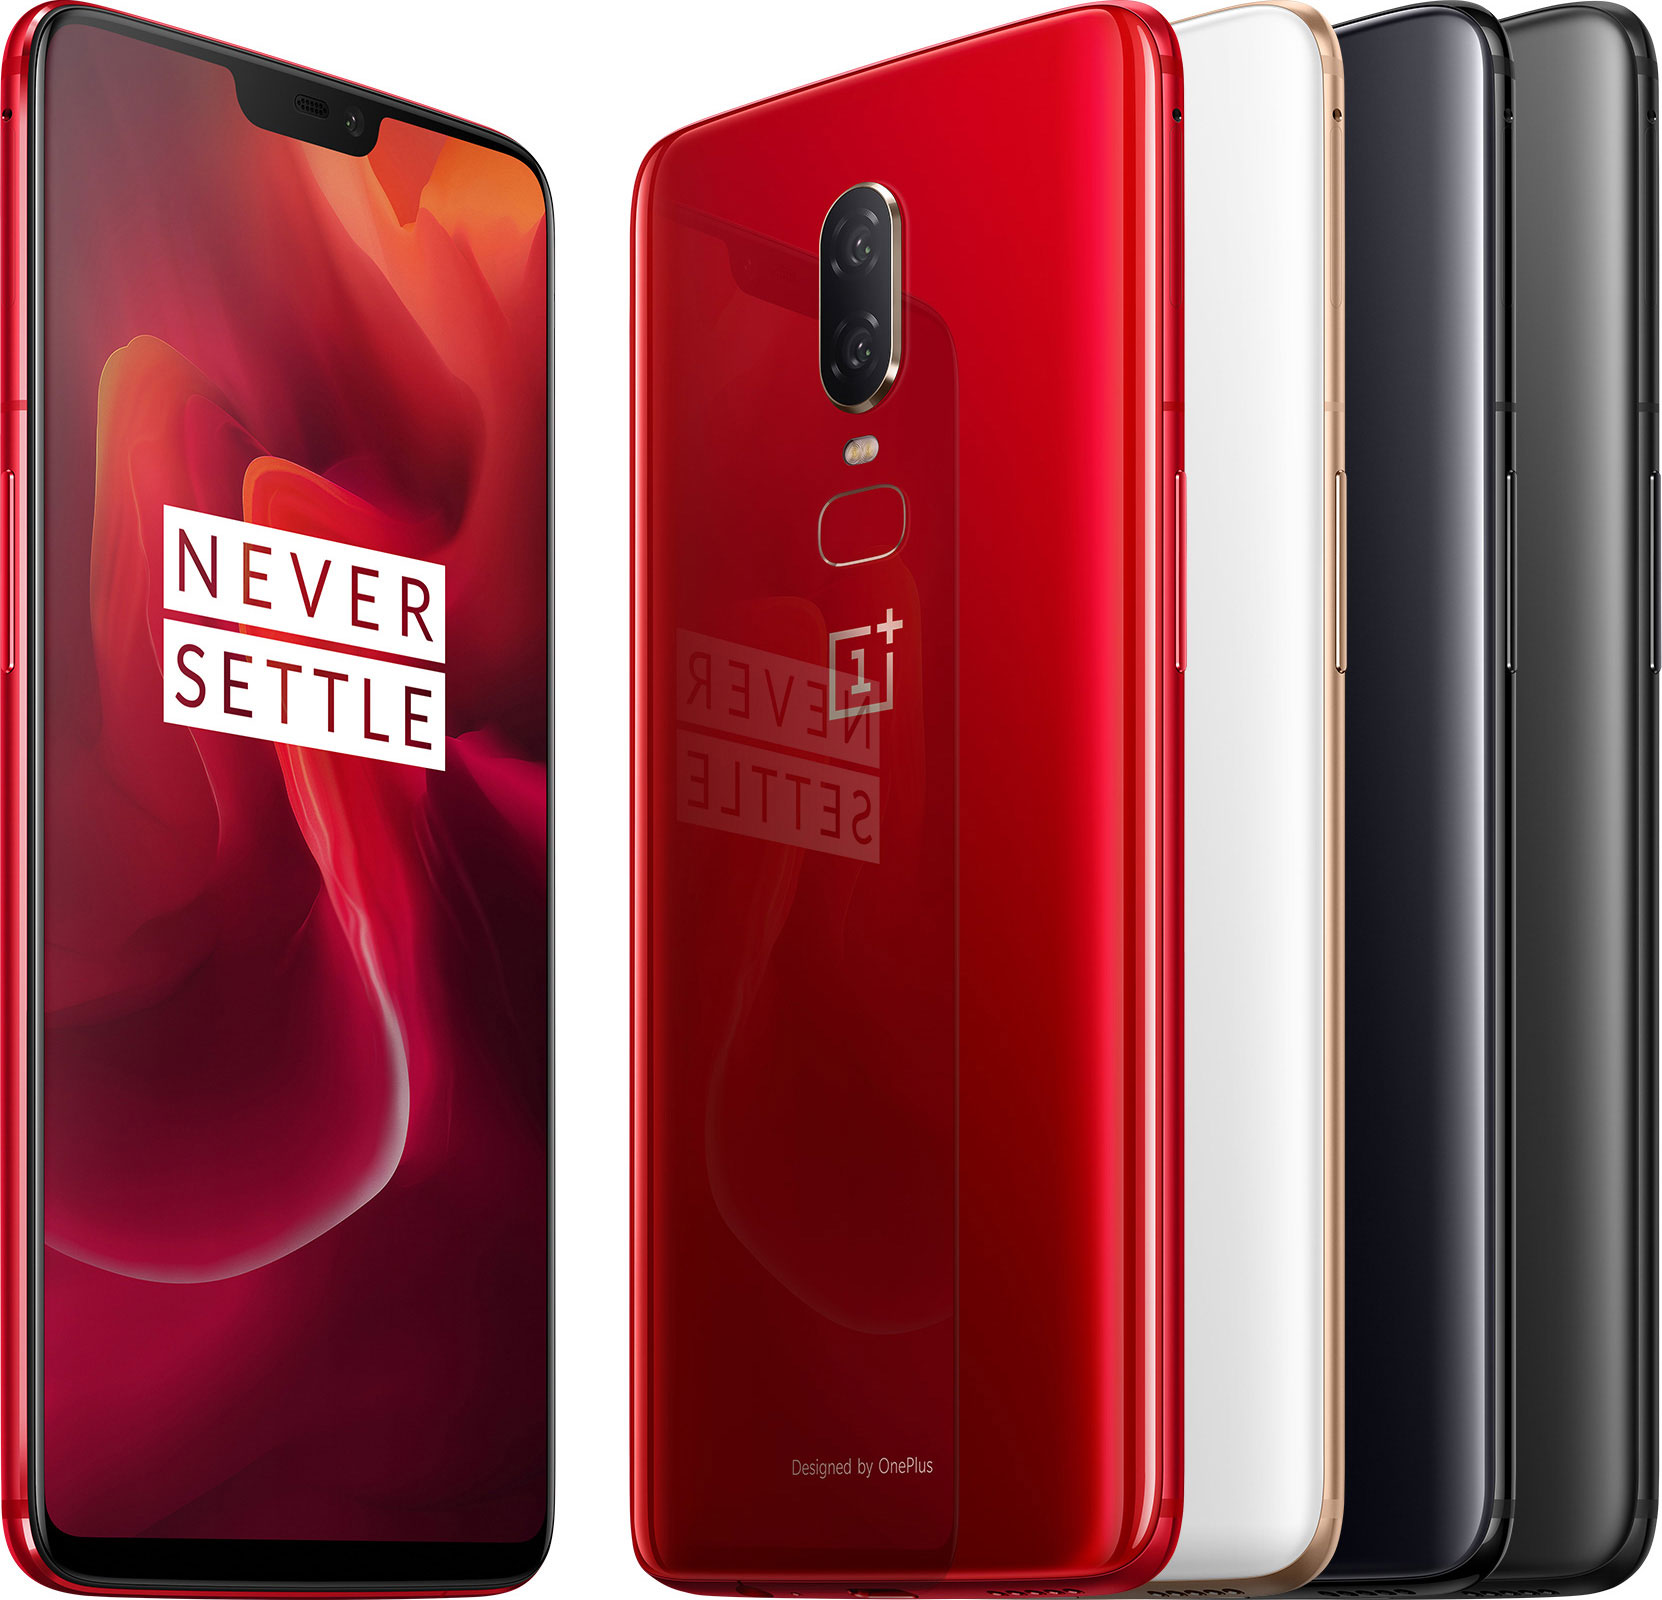 https://www.amazon.in/OnePlus-Mirror-Black-64GB-Storage/dp/B0756Z43QS